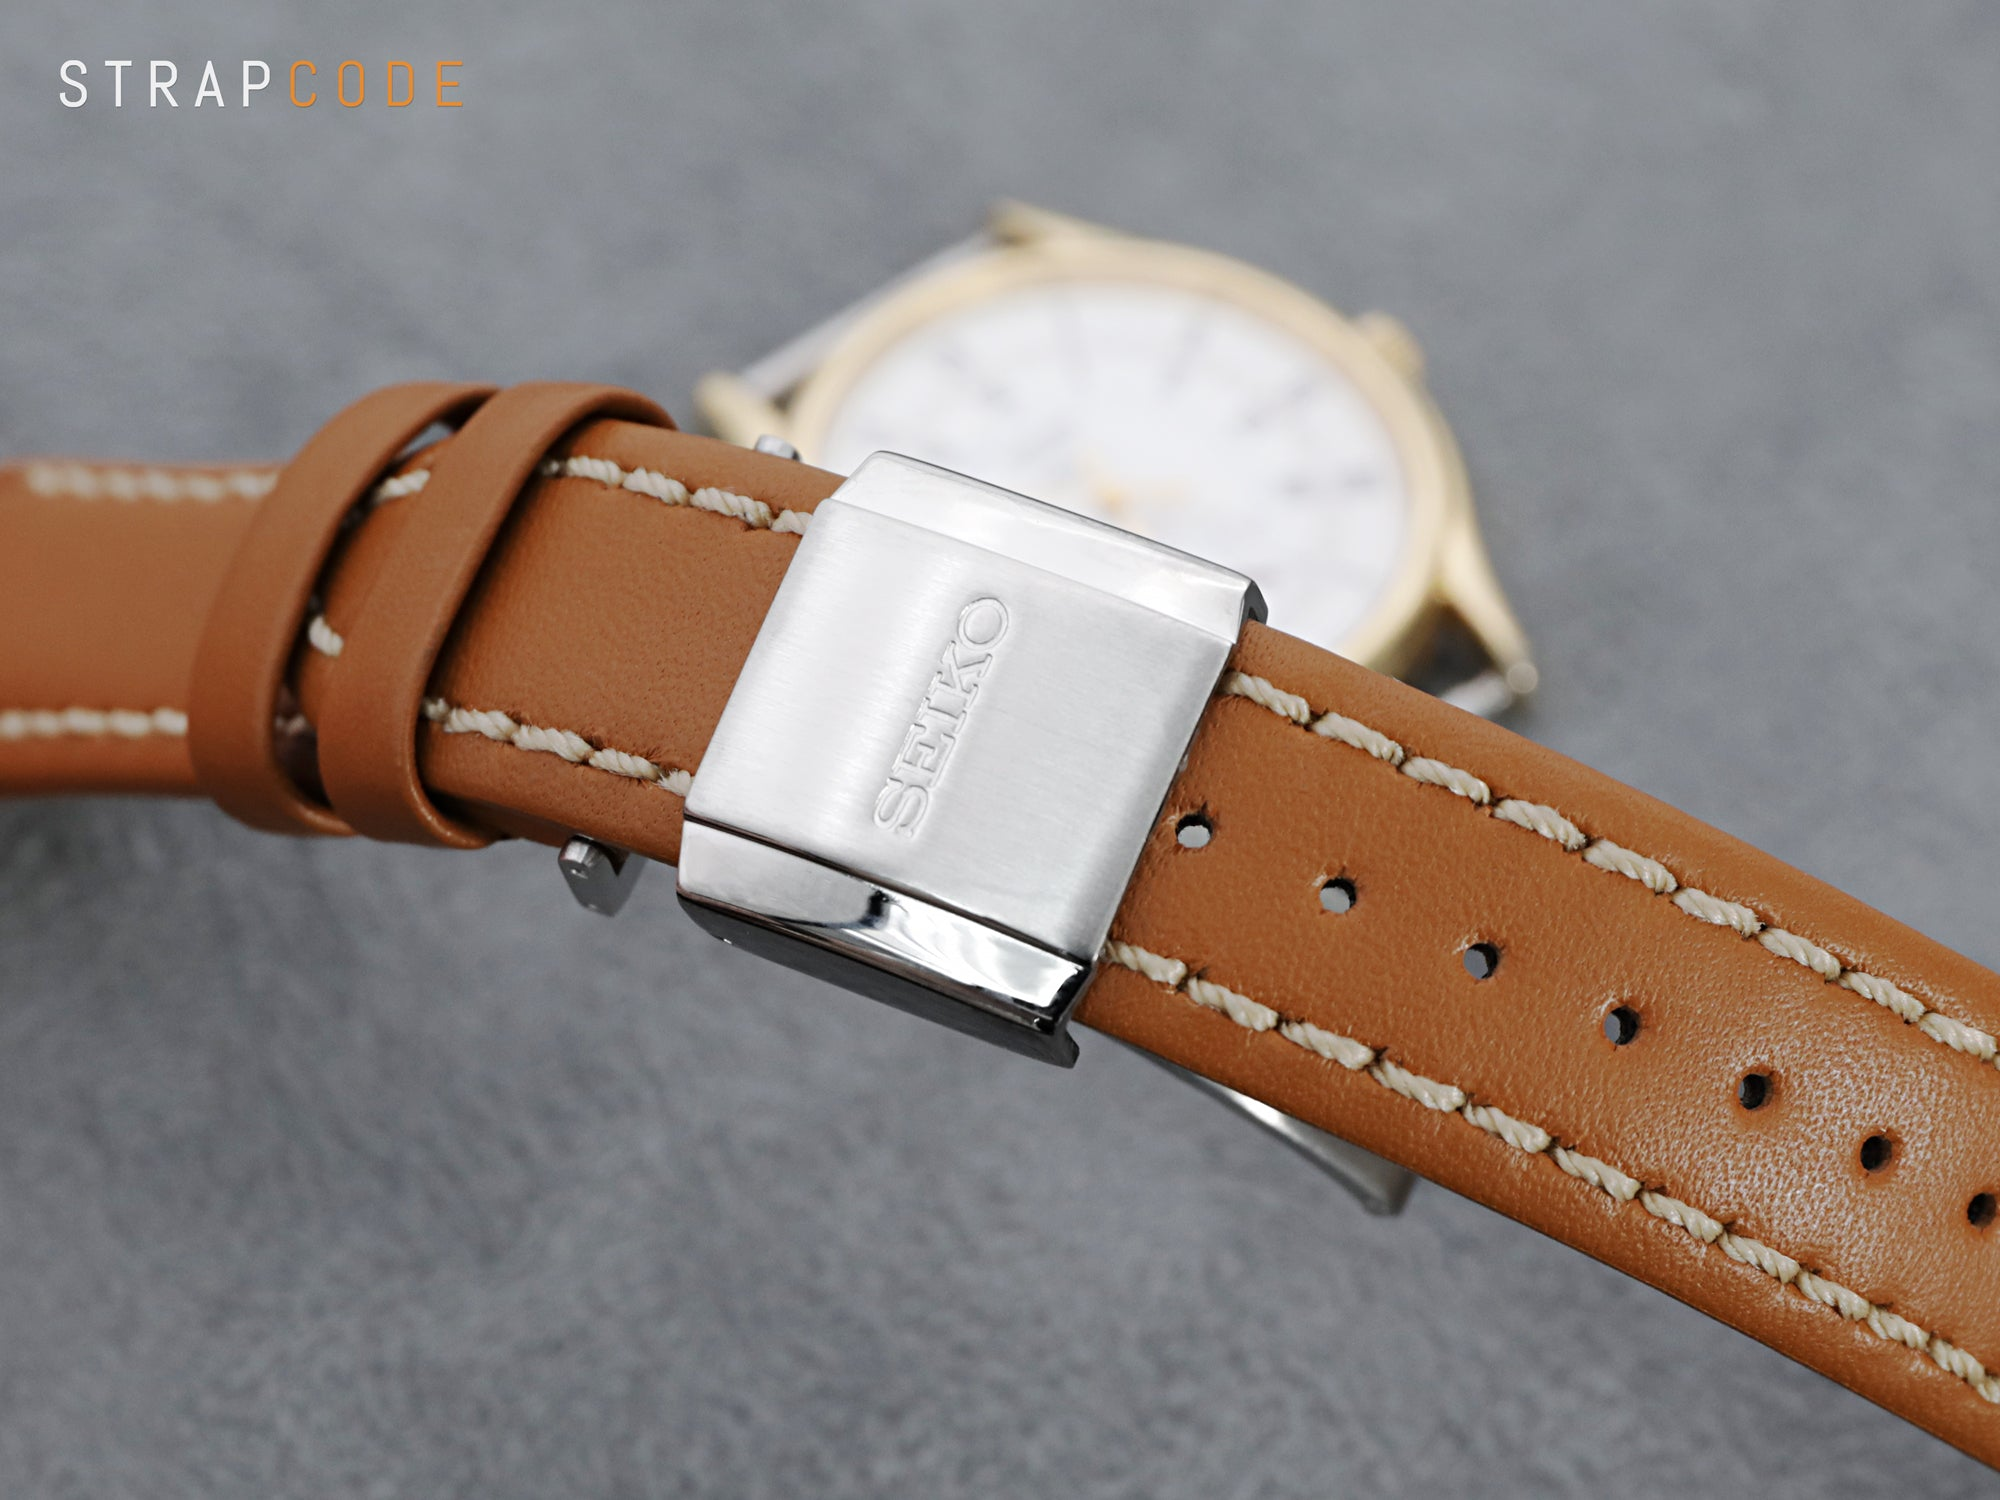 strapcode-watch-bands-W_Seiko-leather-deployment-clasp-curve-end-2